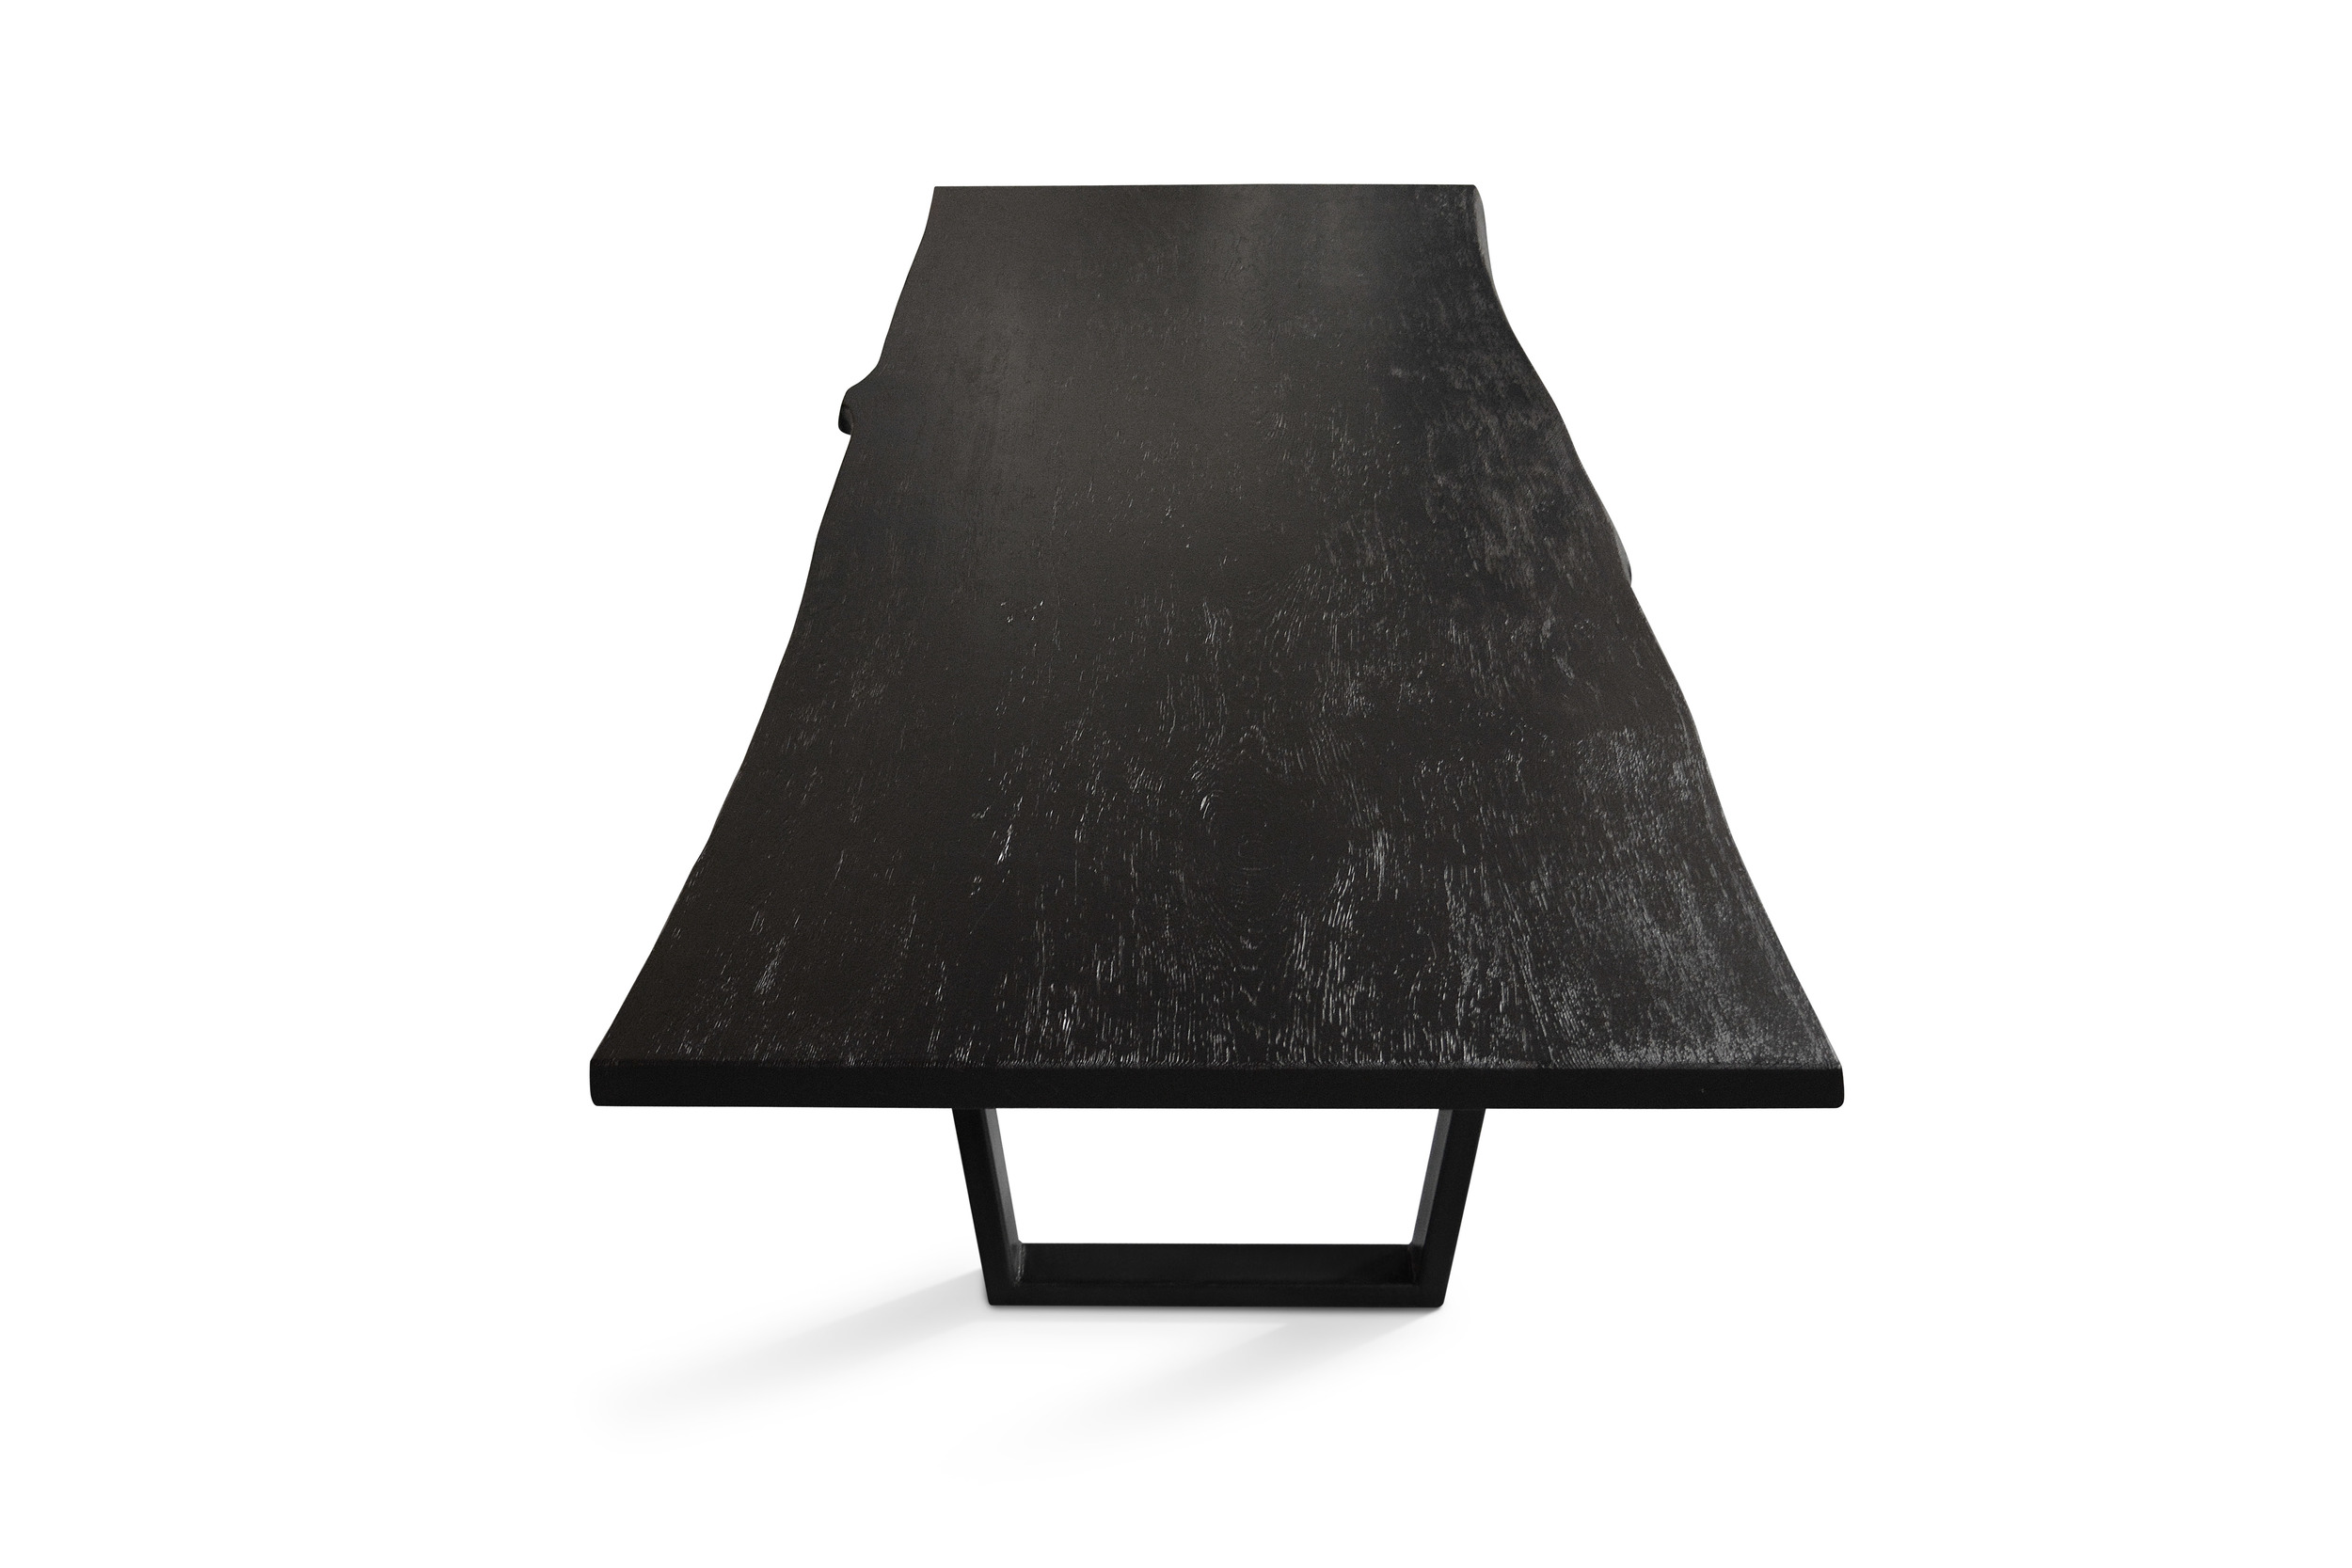 Etz & Steel Ganymede Live Edge Table Black Base 2.JPG